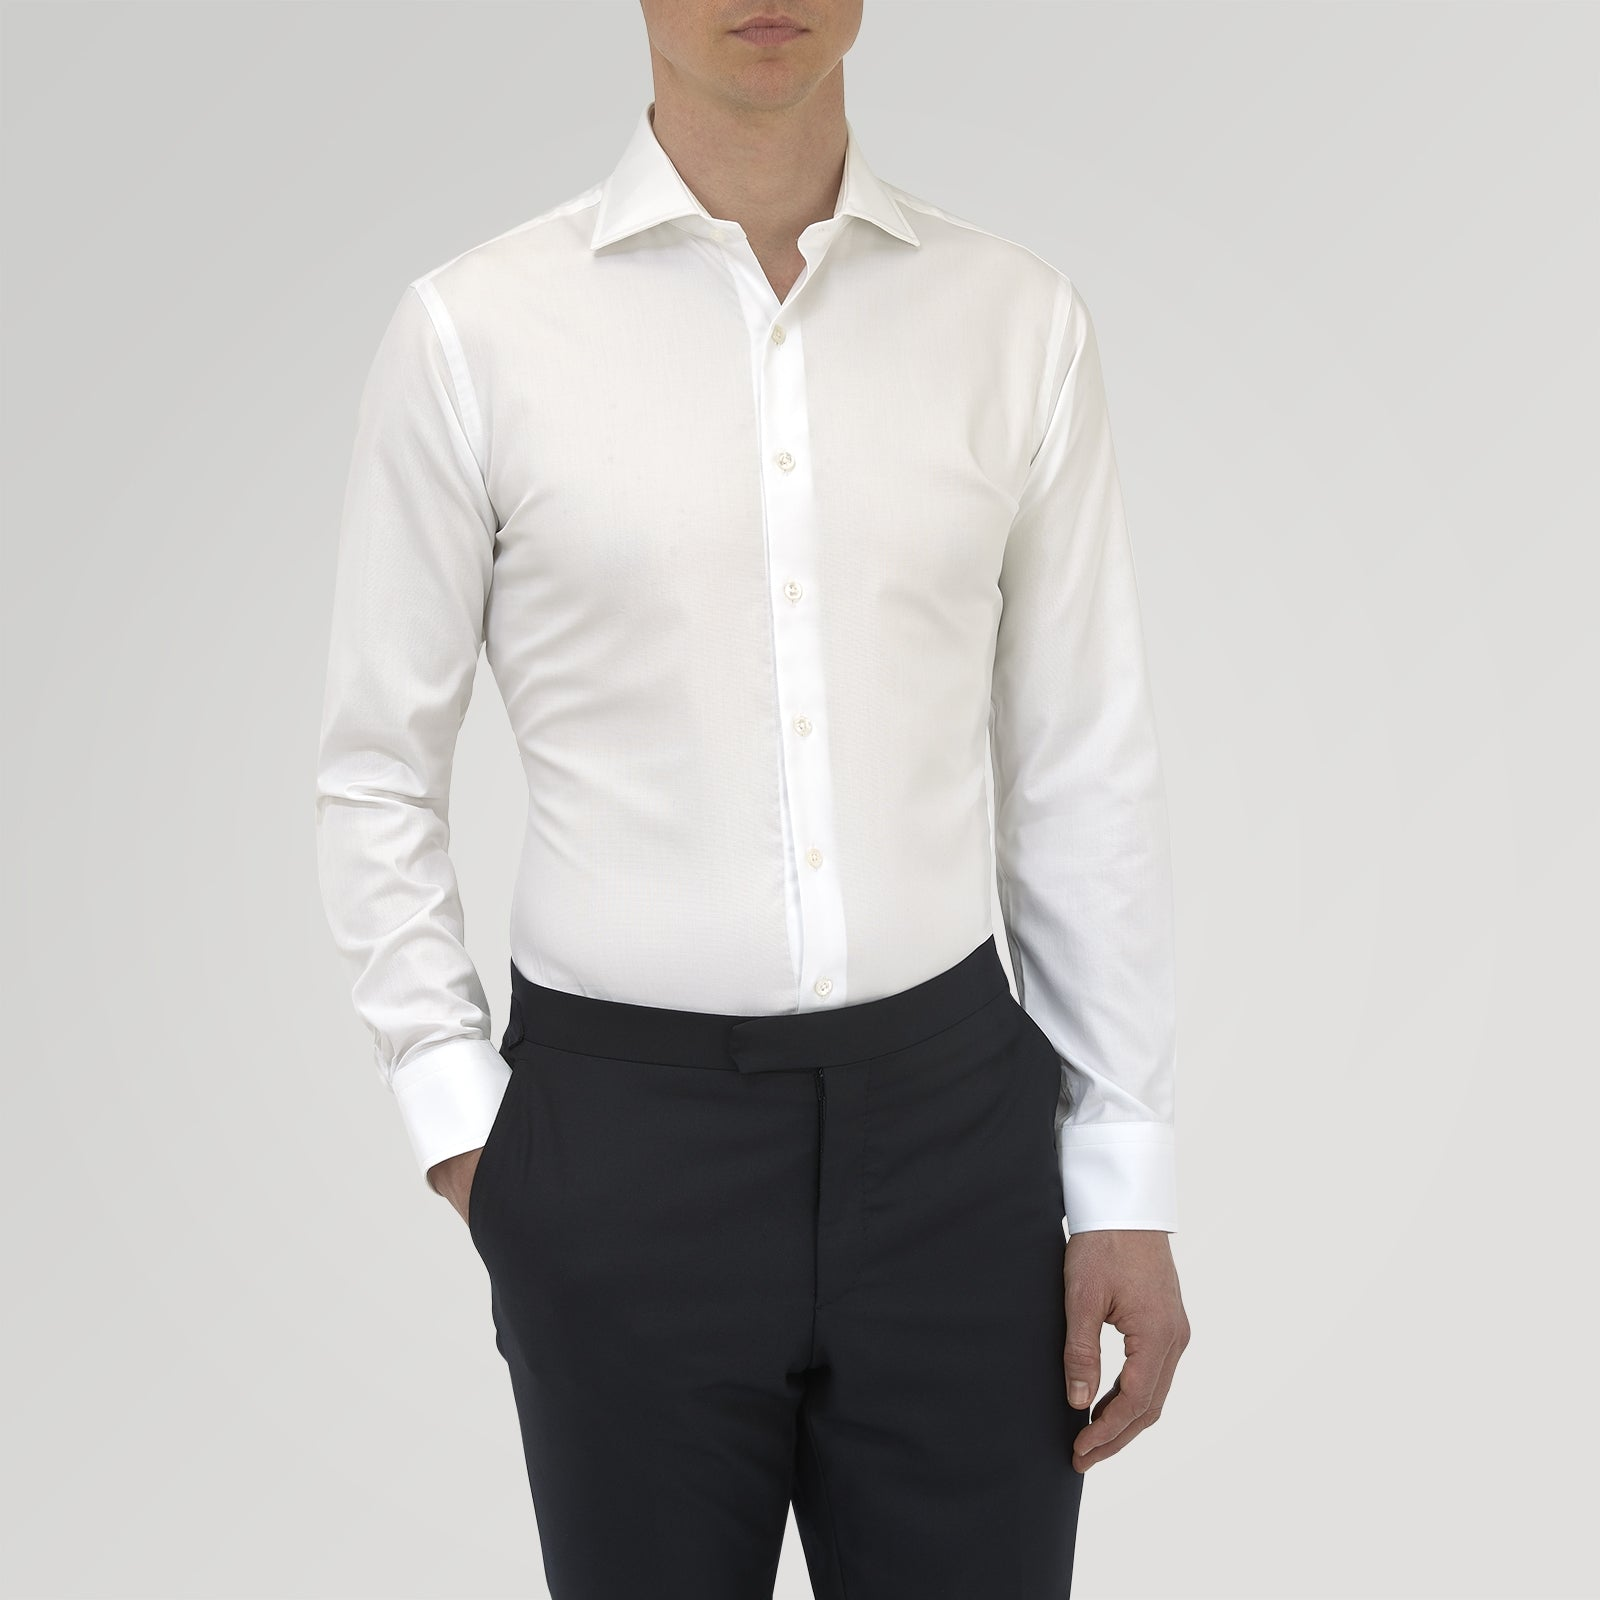 Tailored Fit White Royal Oxford Cotton Shirt with Kent Collar and 2-Button Cuffs